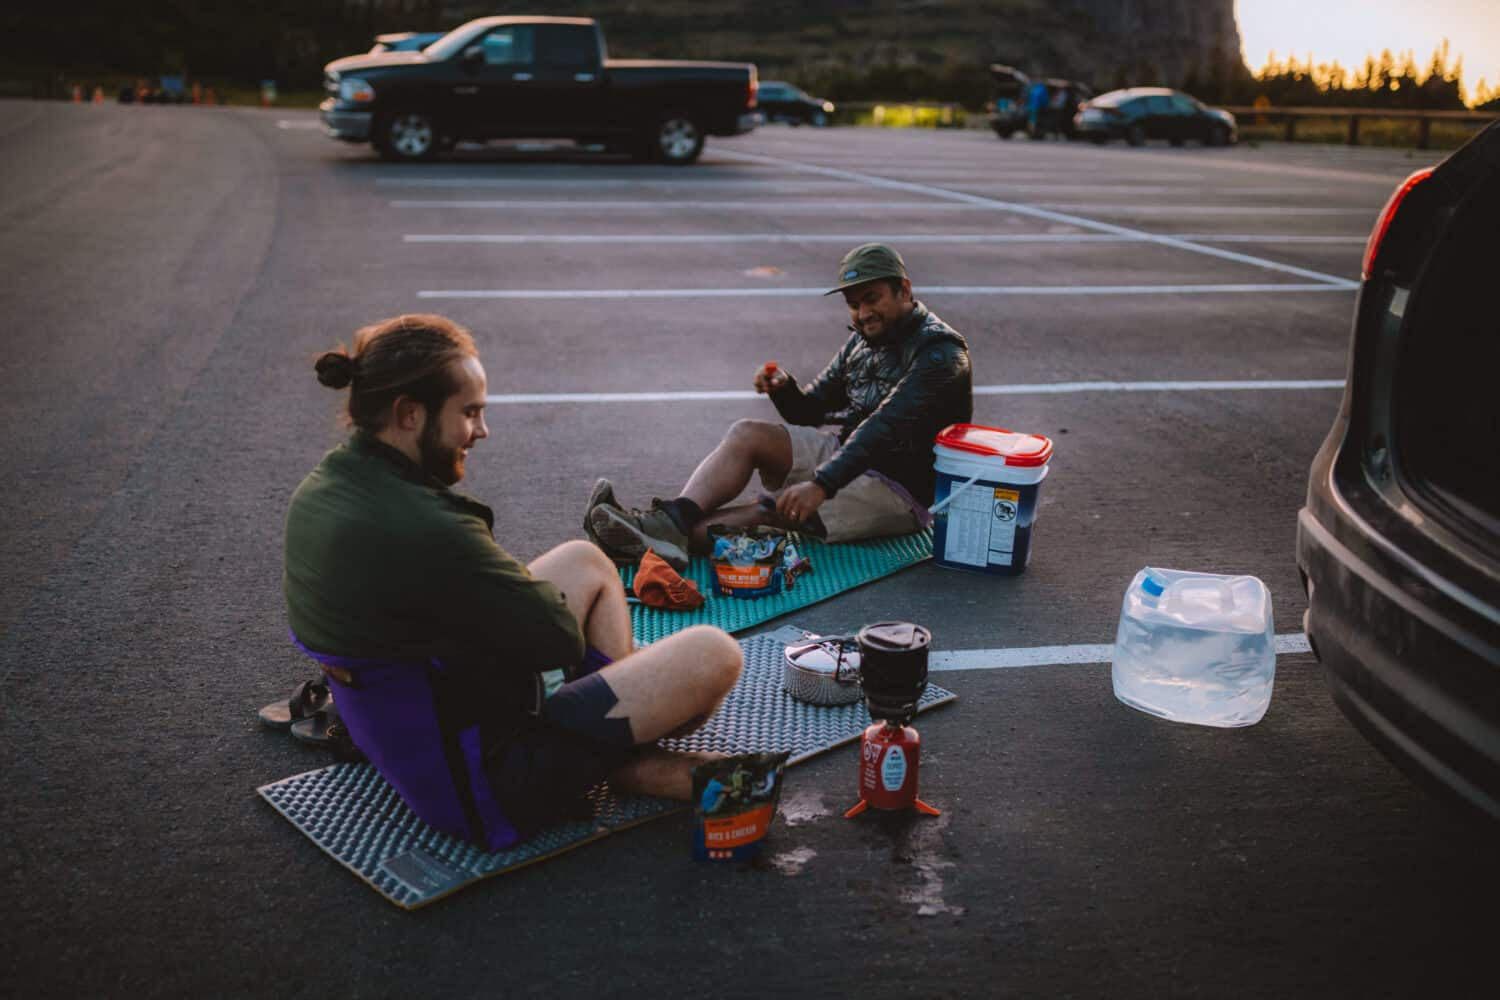 Eating dinner in parking lot